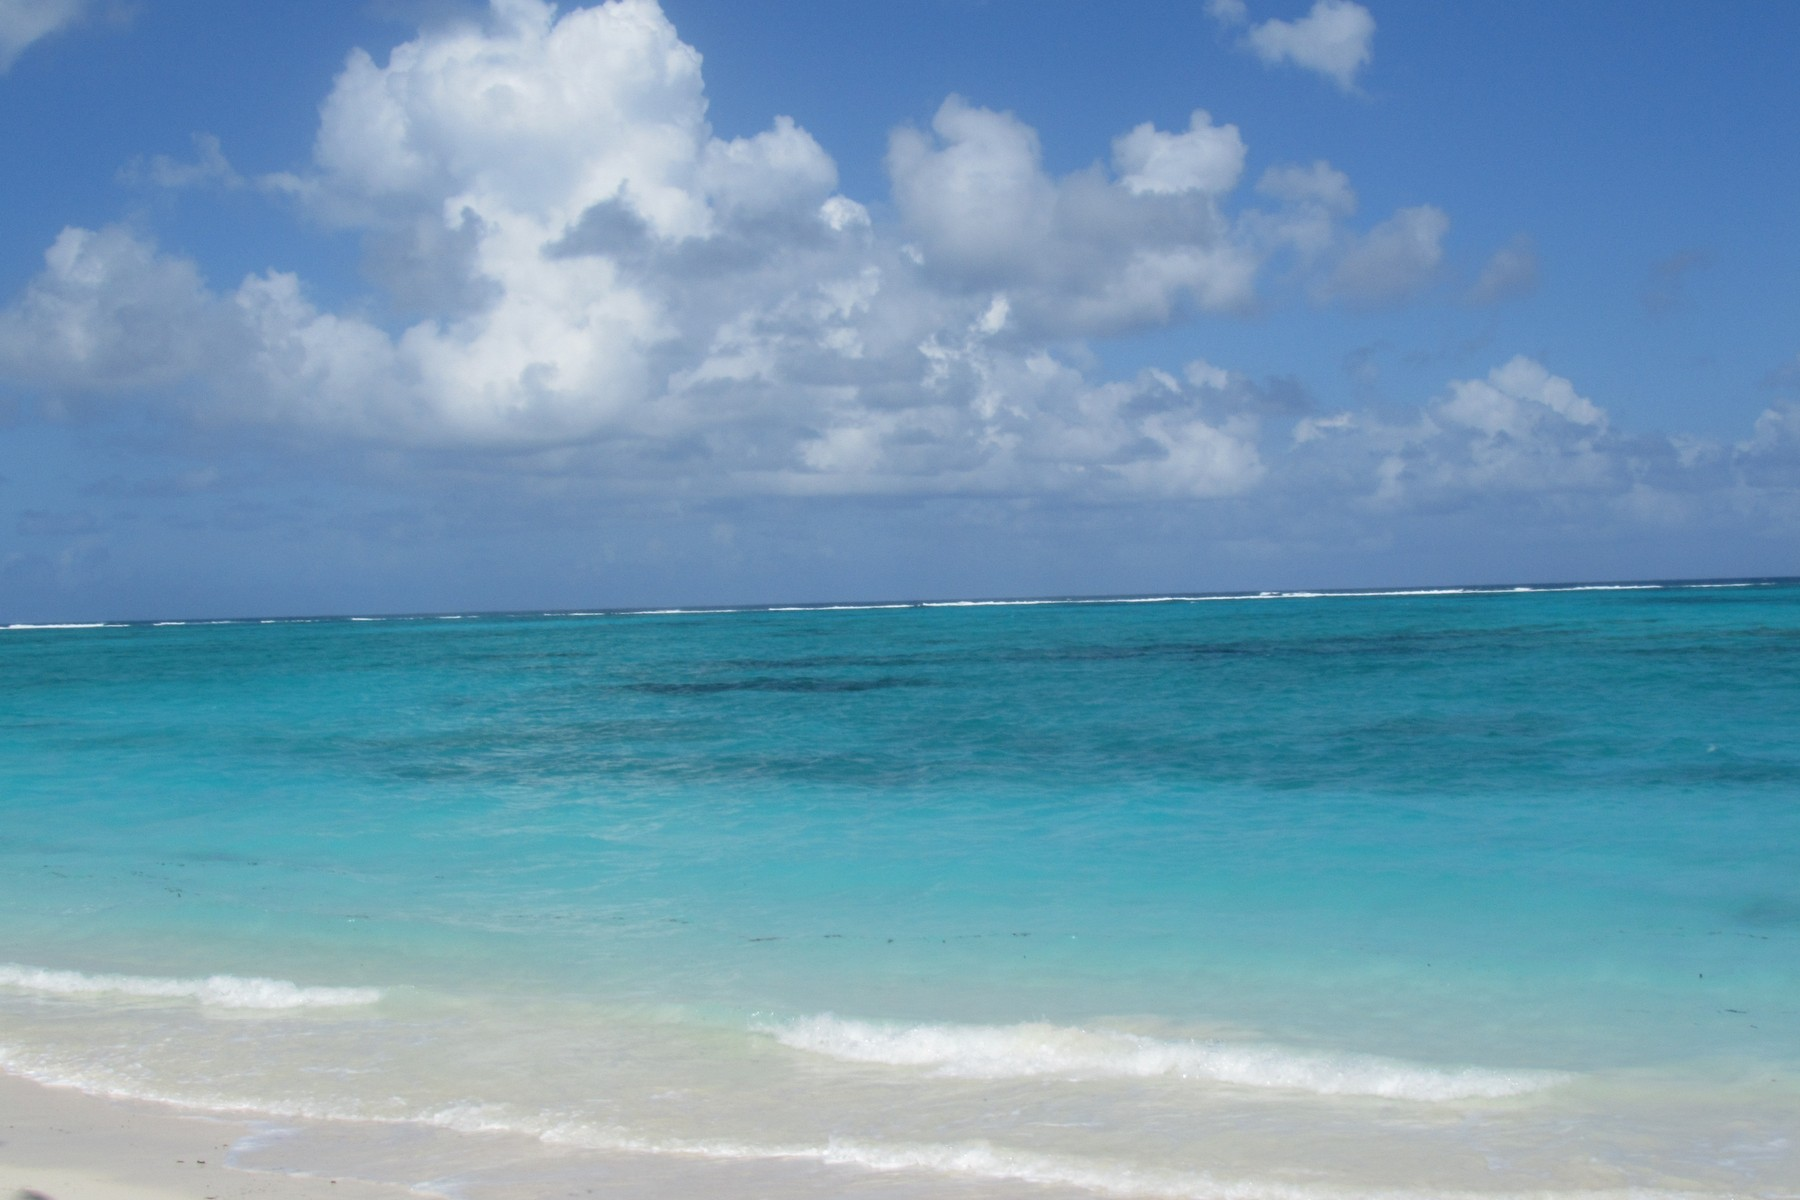 Land for Sale at Seaside North Caicos Sandy Point, North Caicos Turks And Caicos Islands